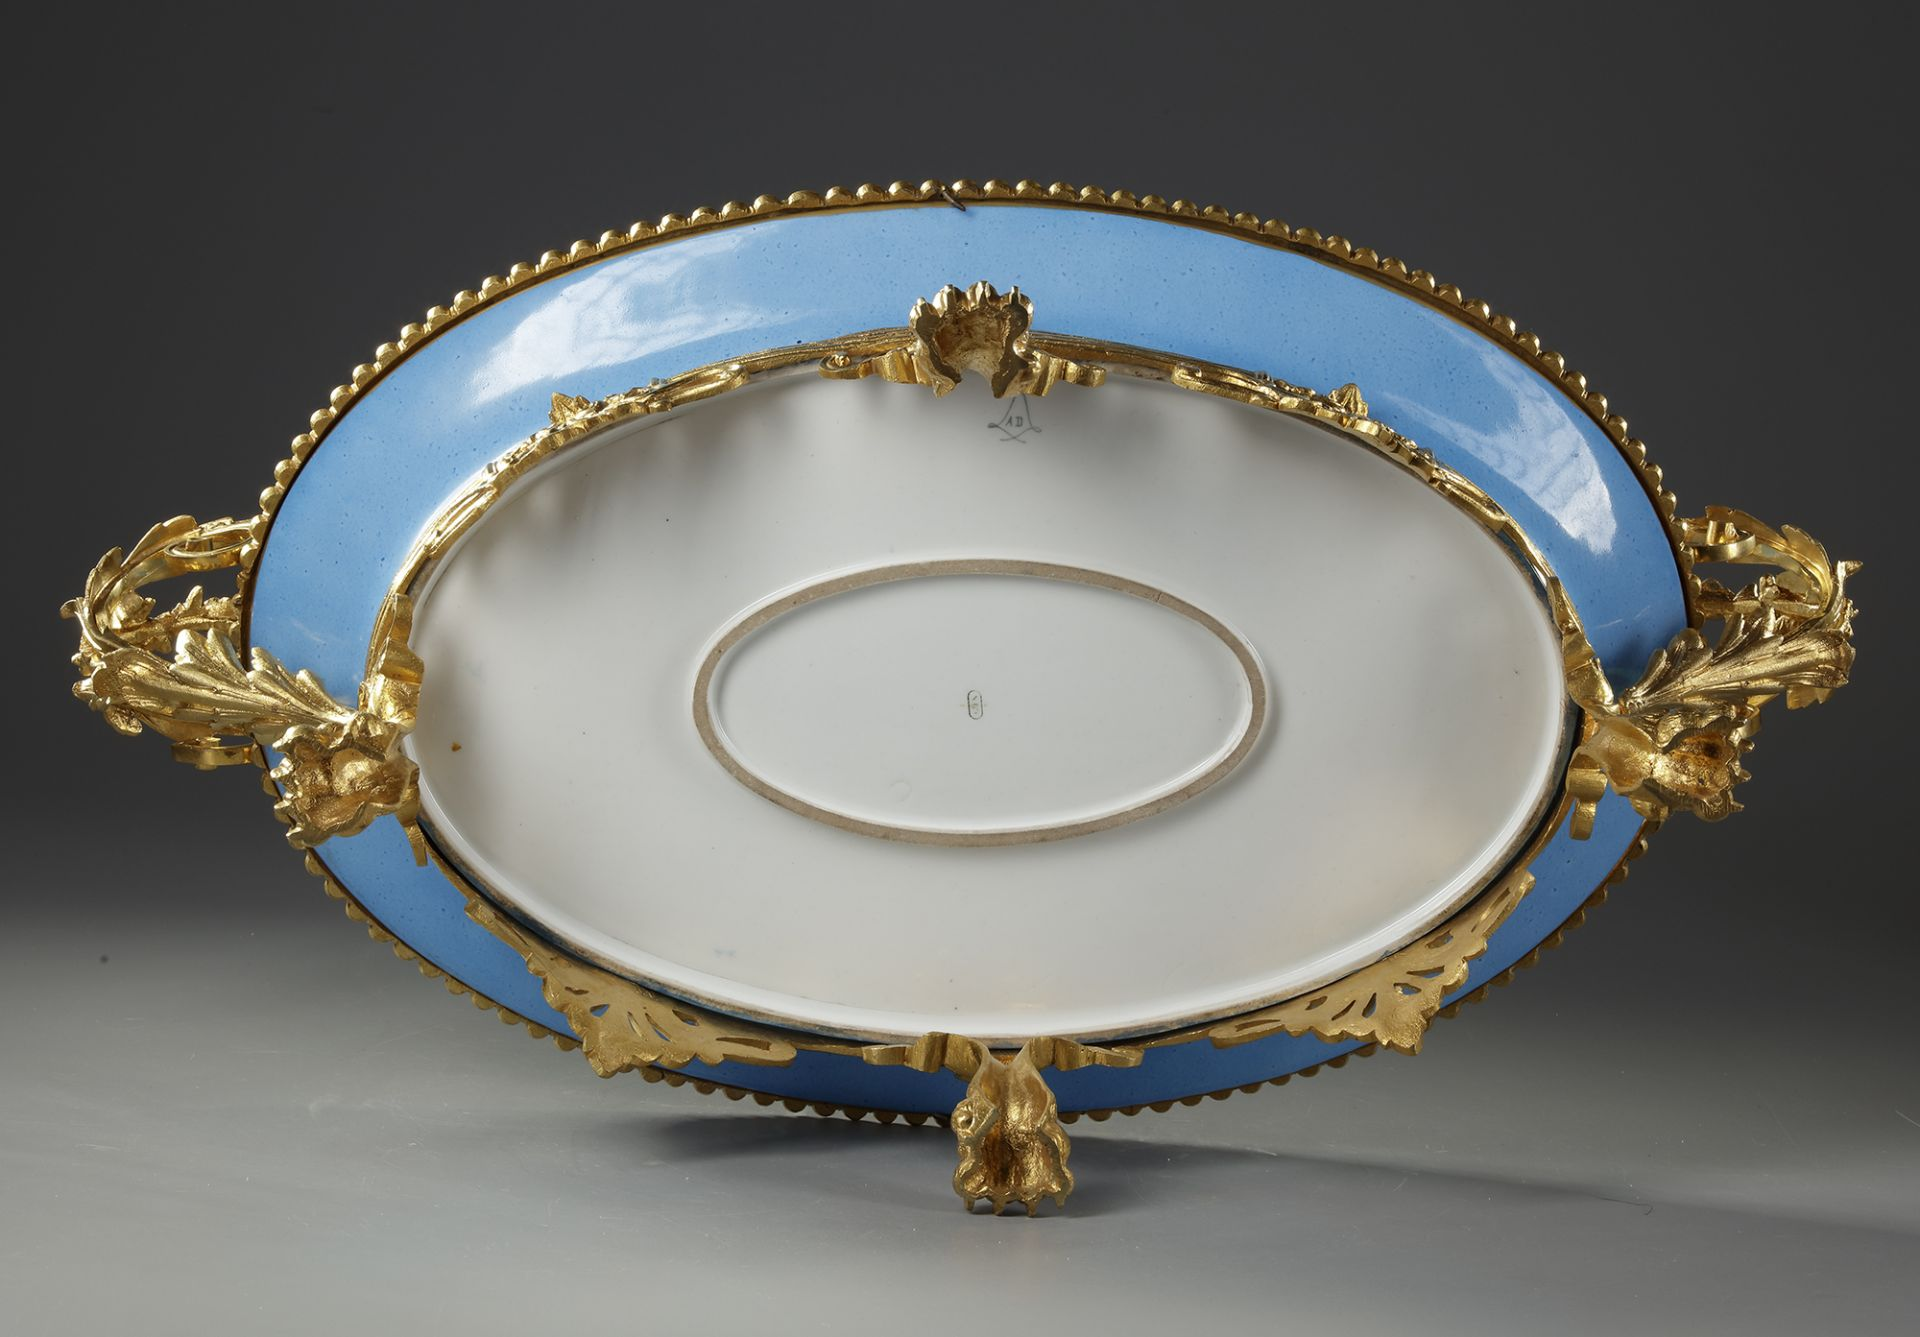 A LARGE 'SEVRES' PLATE, 19TH CENTURY - Image 5 of 5